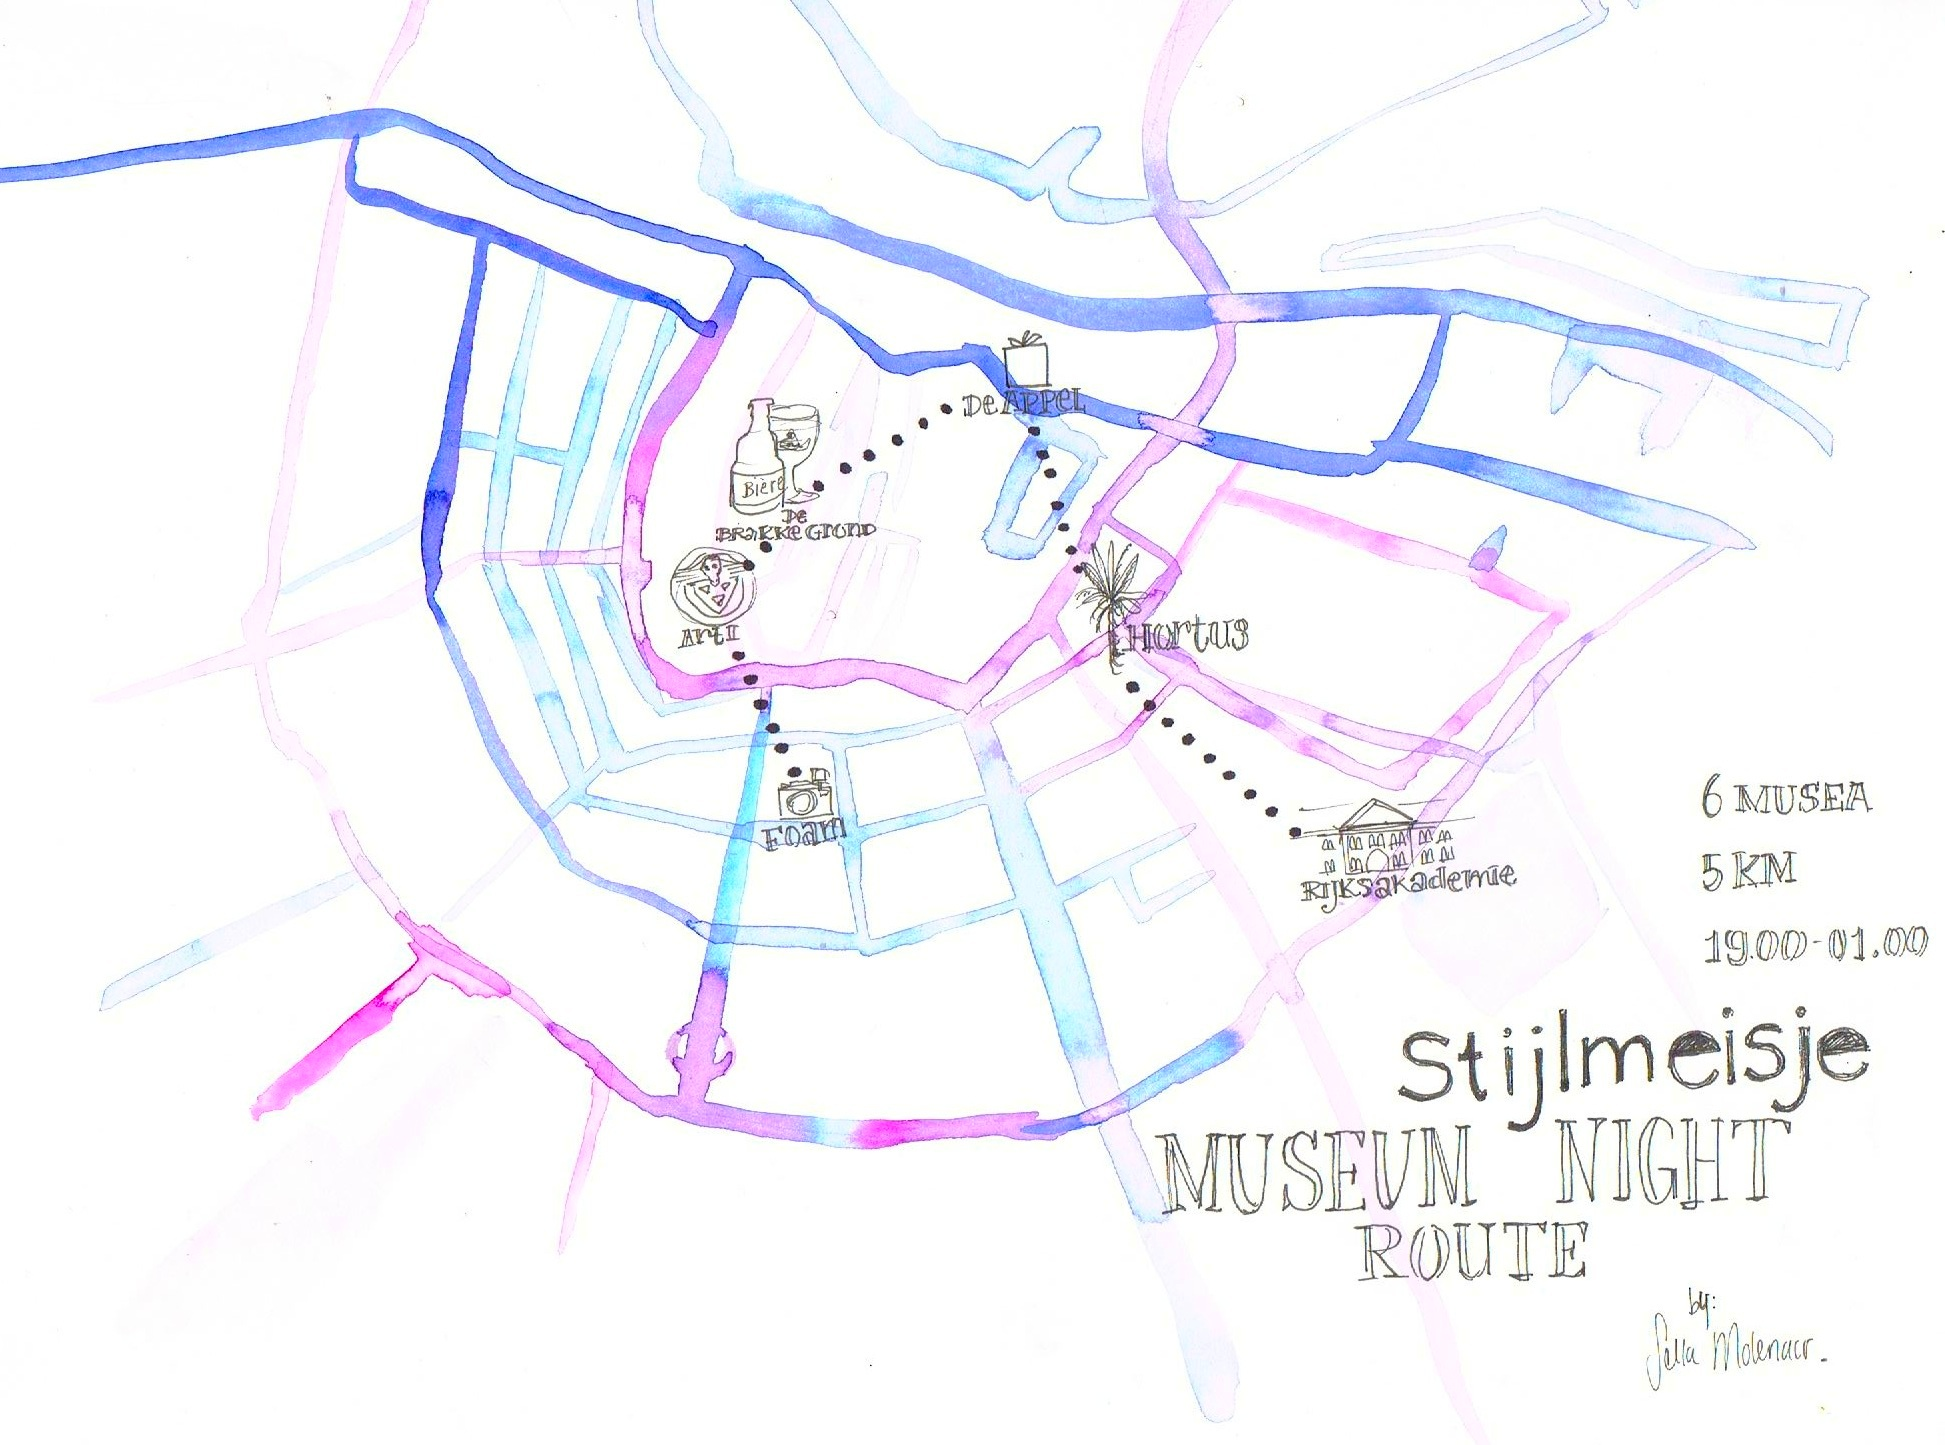 Stijlmeisje Museum Night route